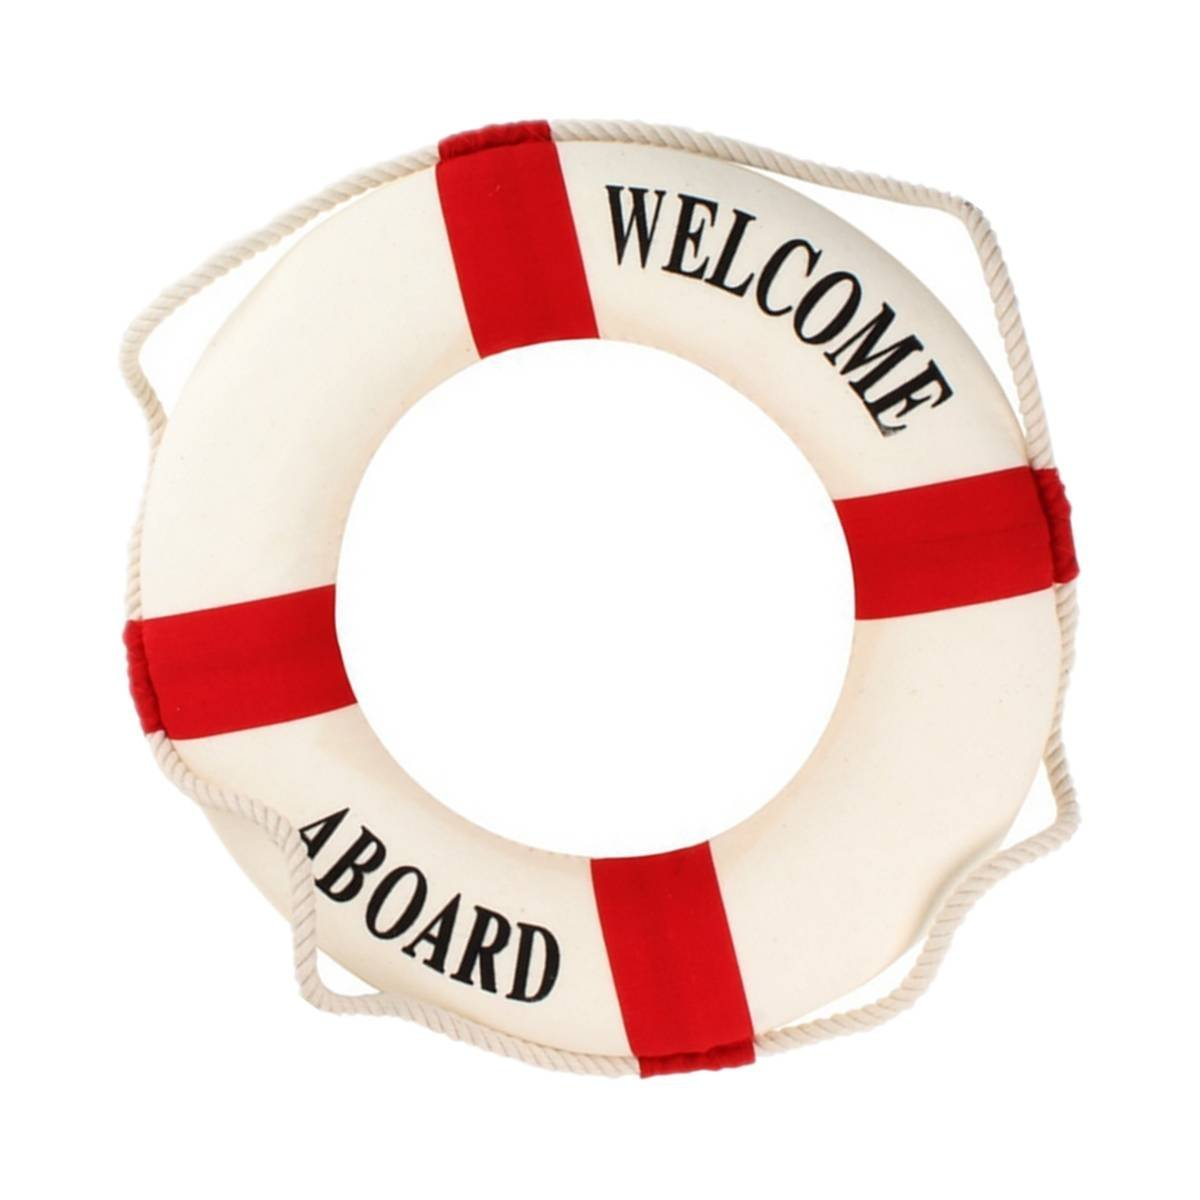 Welcome Aboard Foam Nautical Life Lifebuoy Ring Boat Wall Hanging Home Decoration Red 50cm